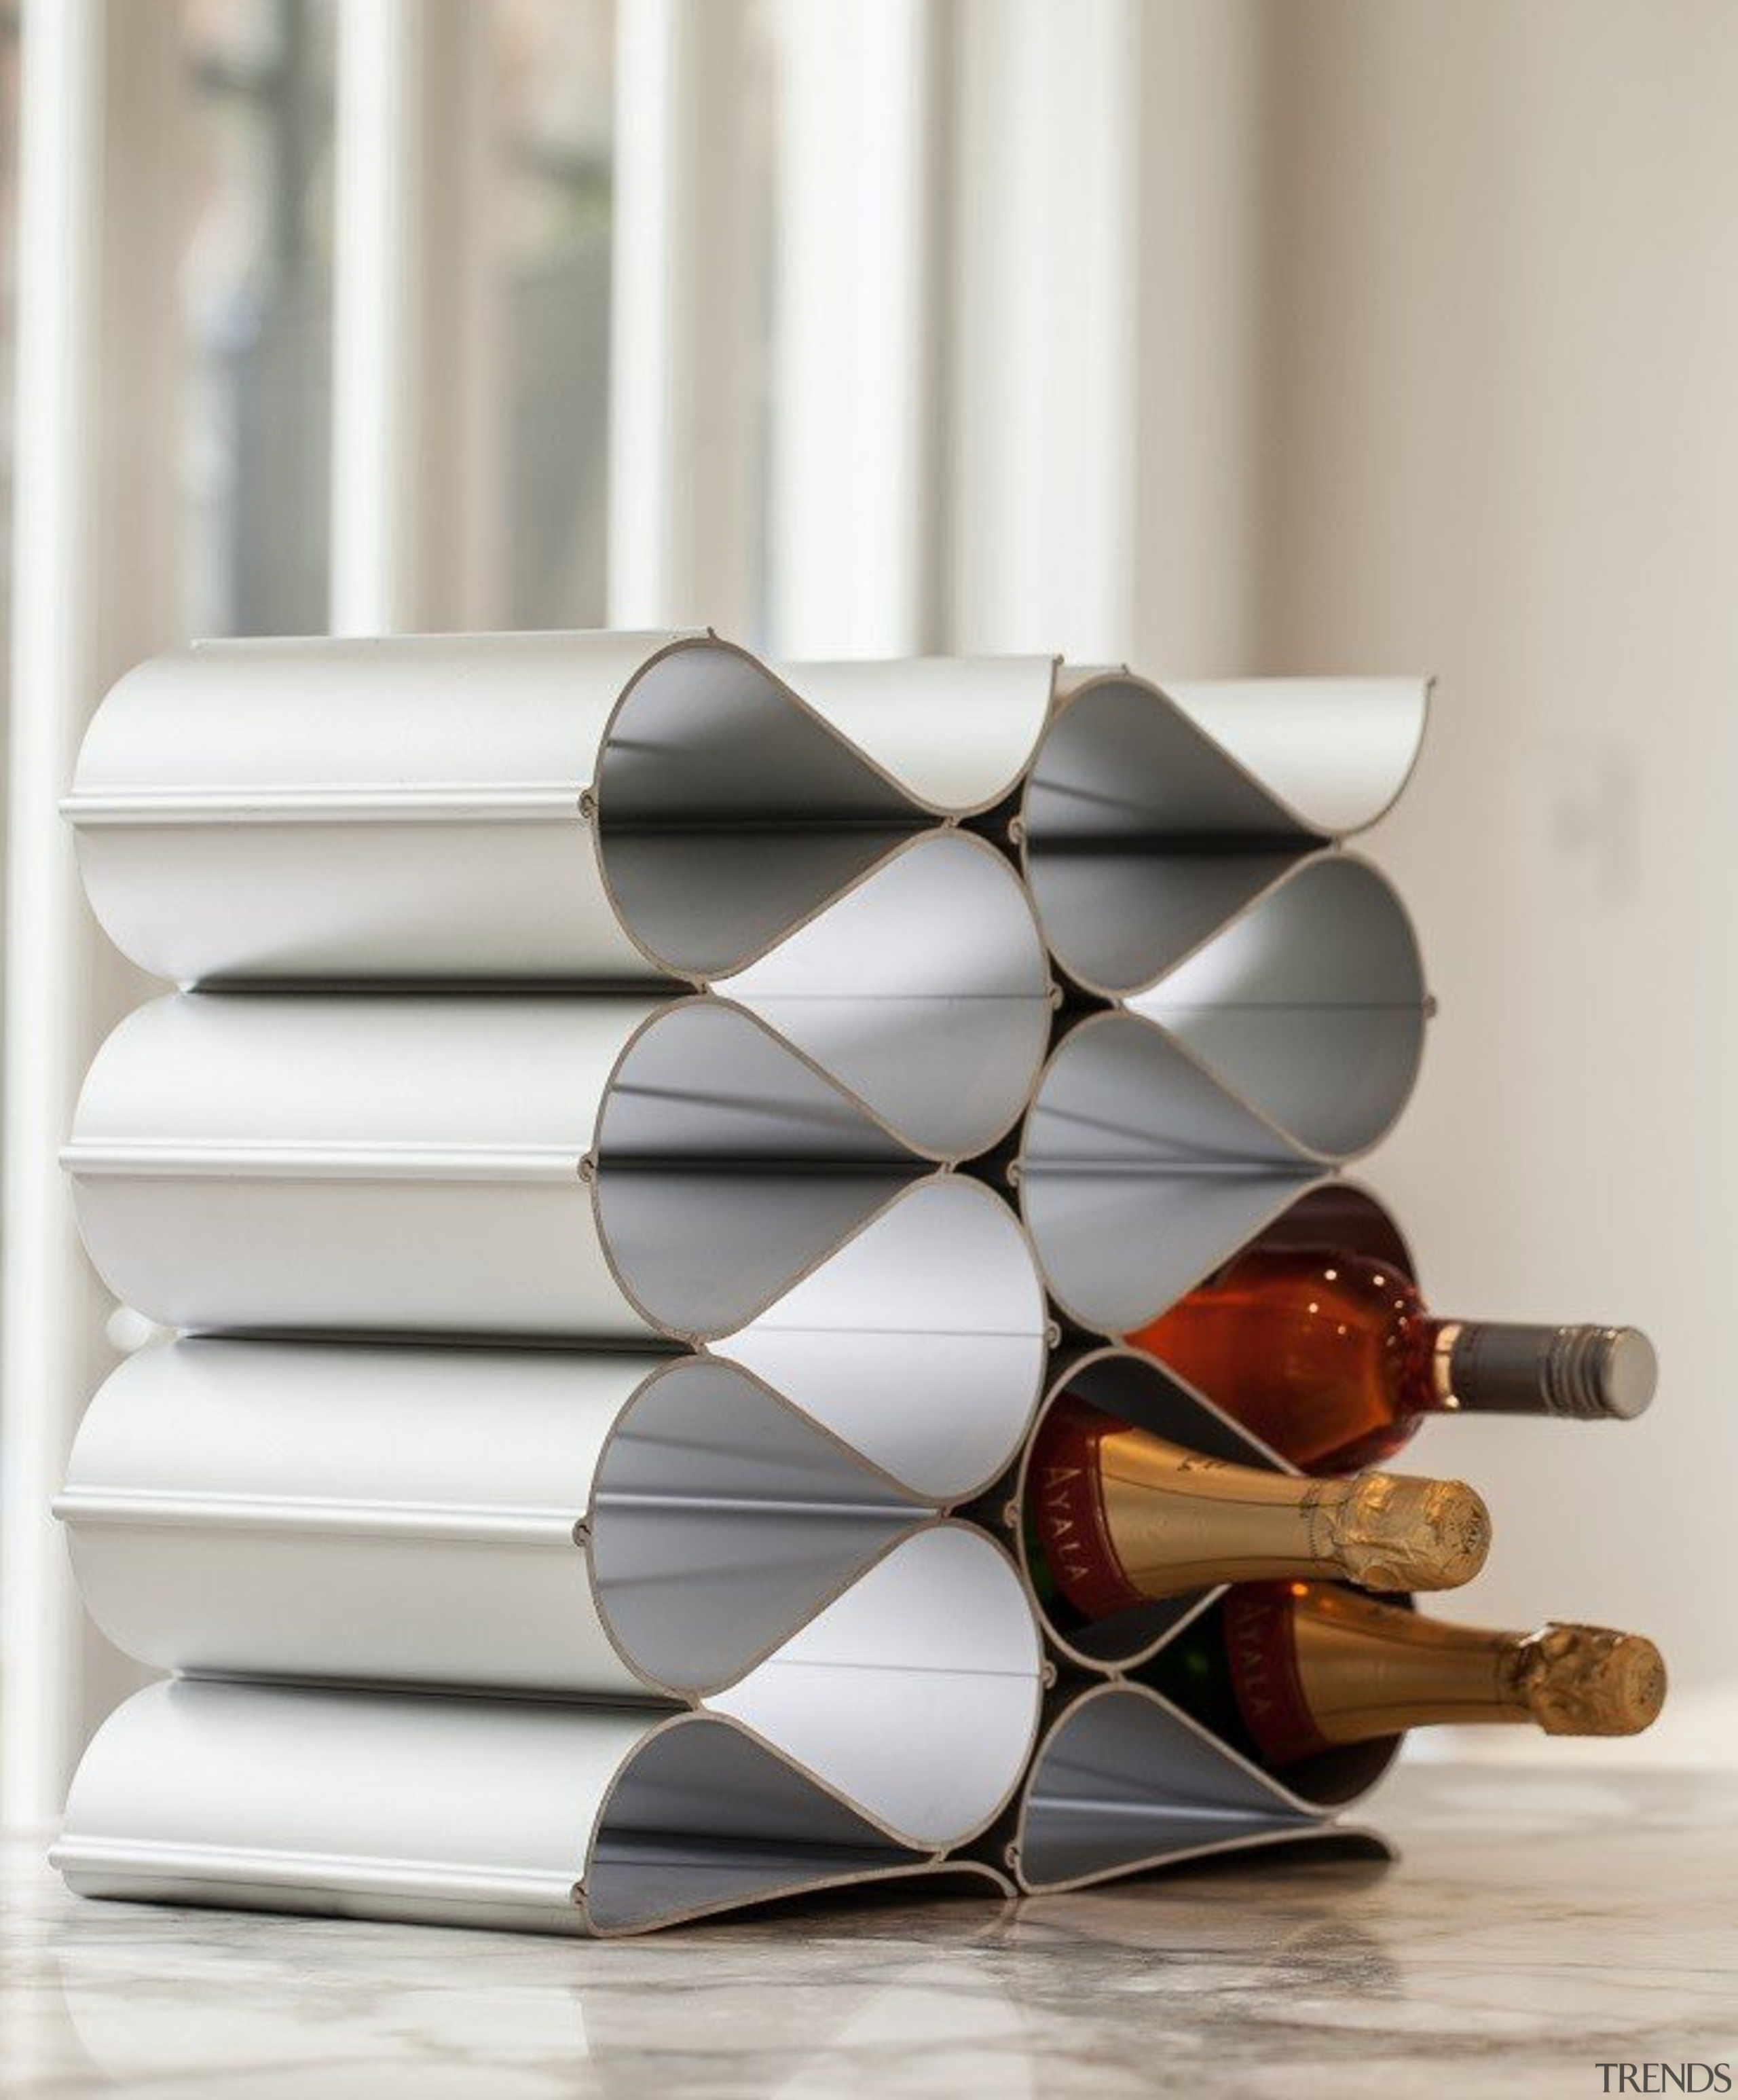 Just starting your wine collection? An Echelon furniture, product design, shelf, gray, white